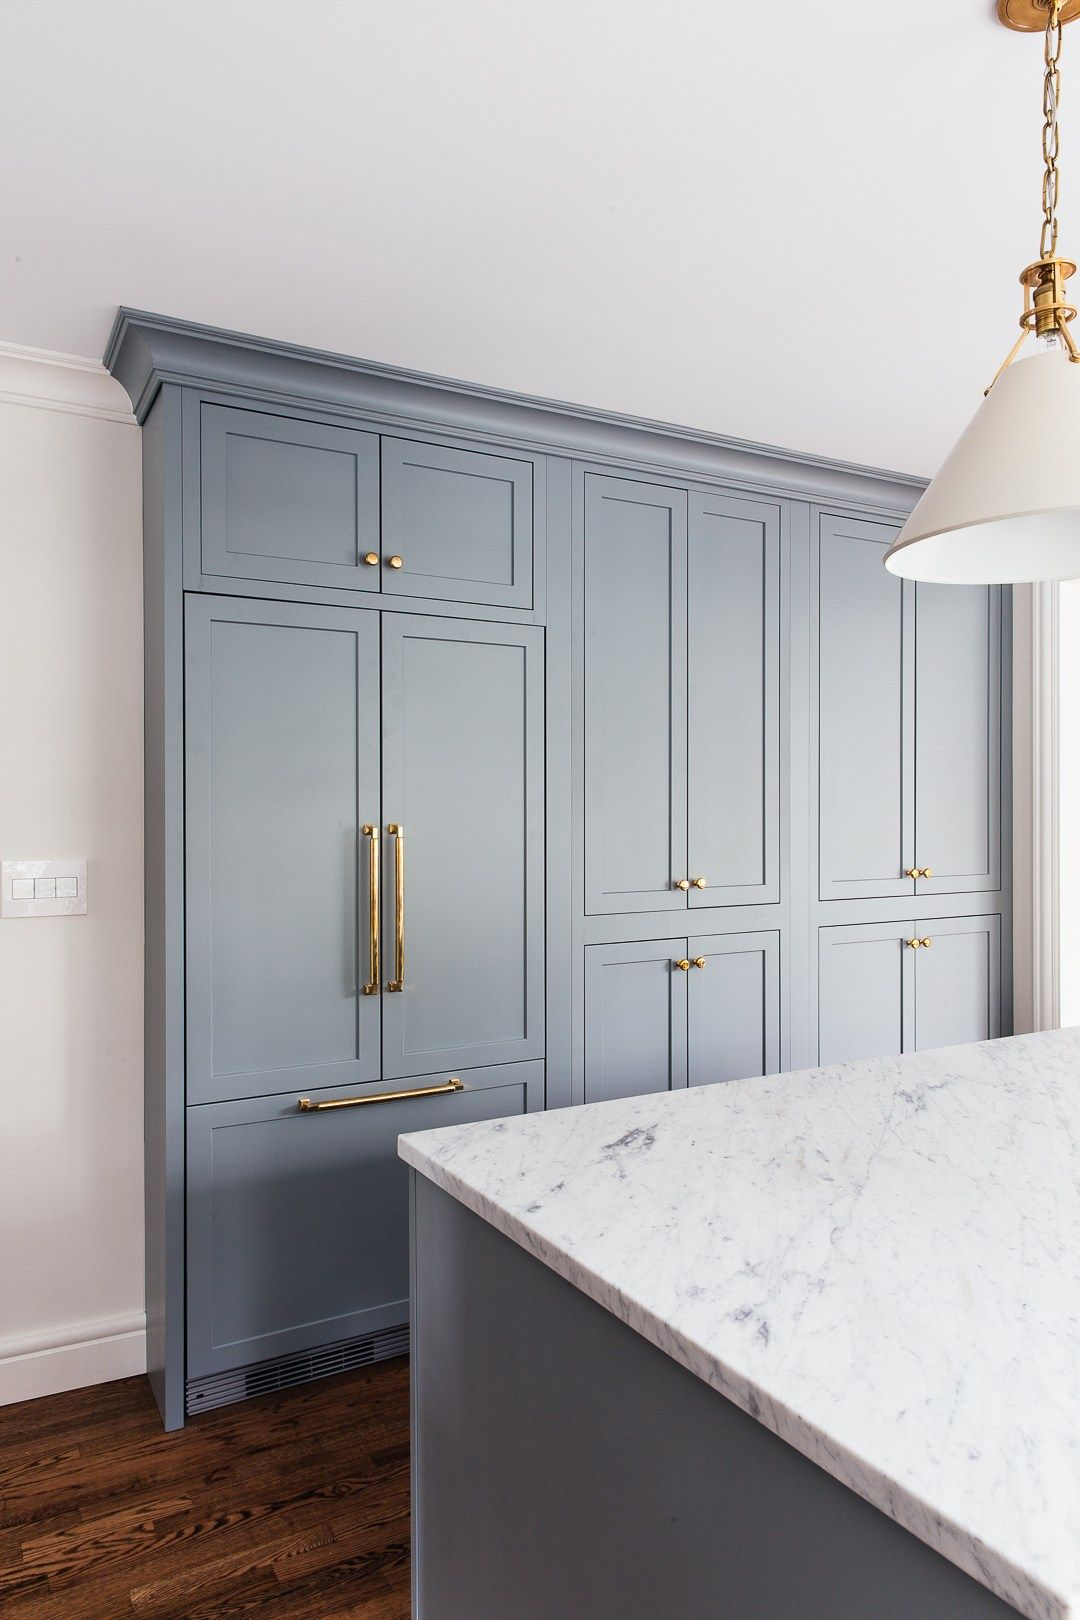 What I Love About This Fridge Is That It S Completely Flush With The Cabinetry And It S Affordab In 2020 Inset Cabinetry Kitchen Transformation Kitchen Pantry Cabinets